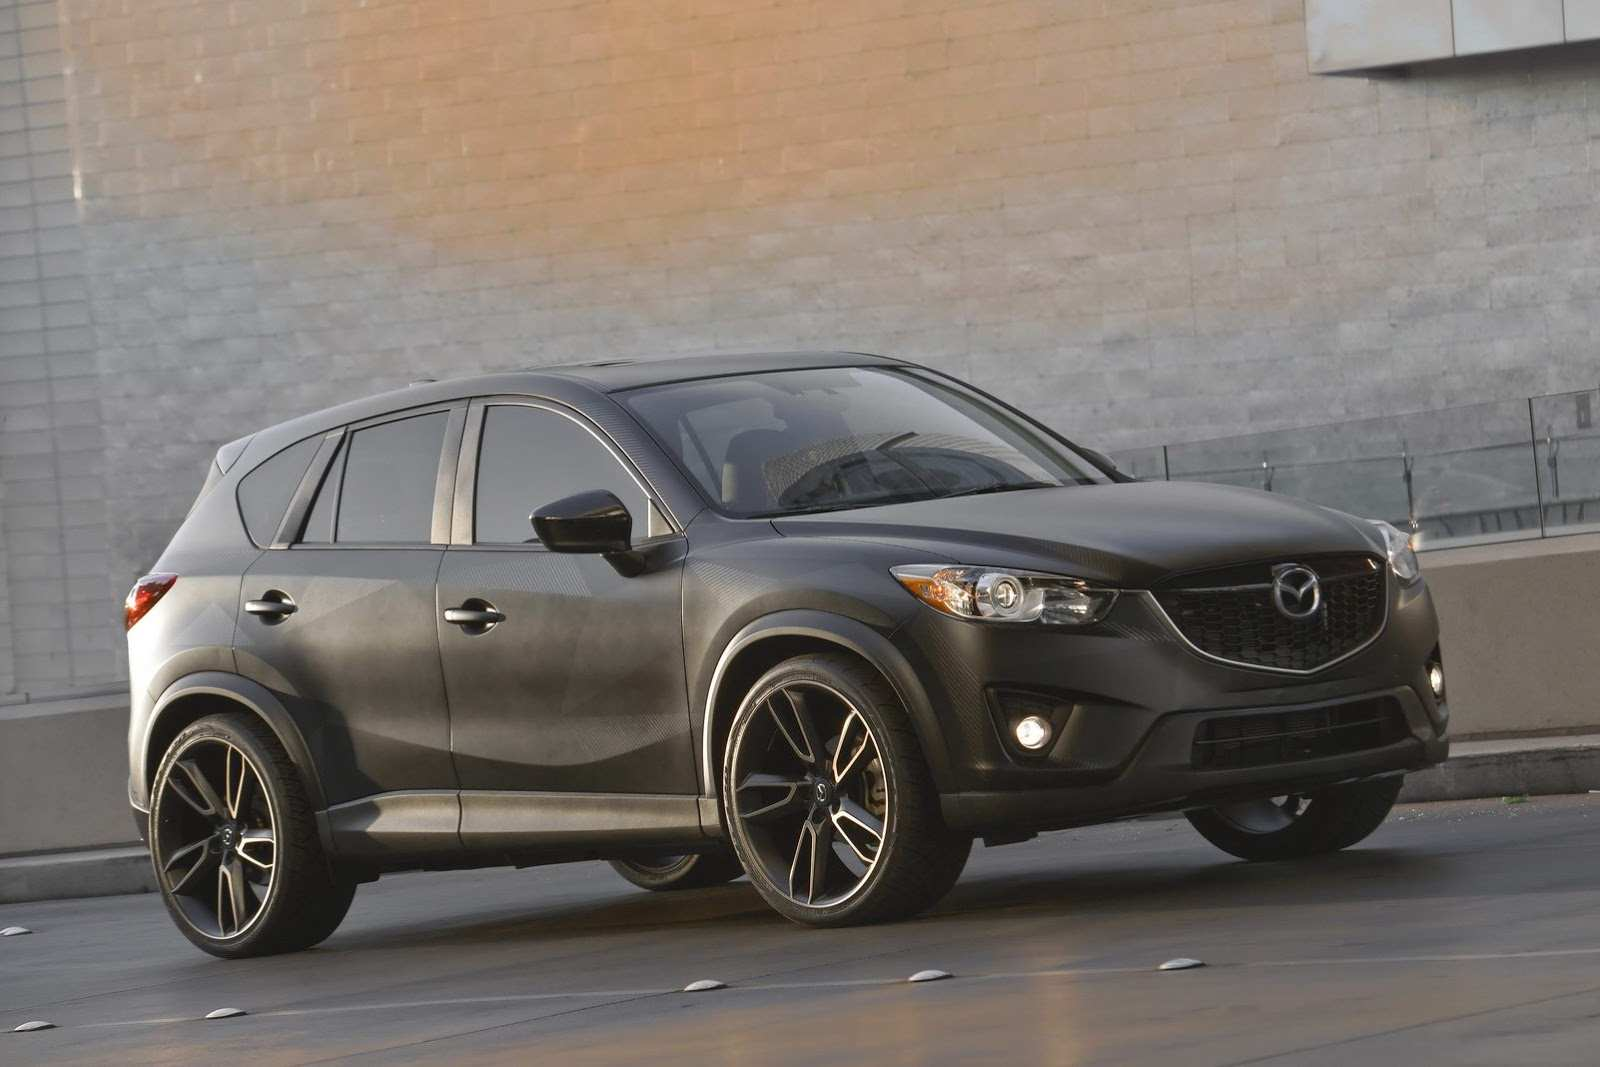 89 Best Review Mazda 2019 Cx 5 Concept Style for Mazda 2019 Cx 5 Concept